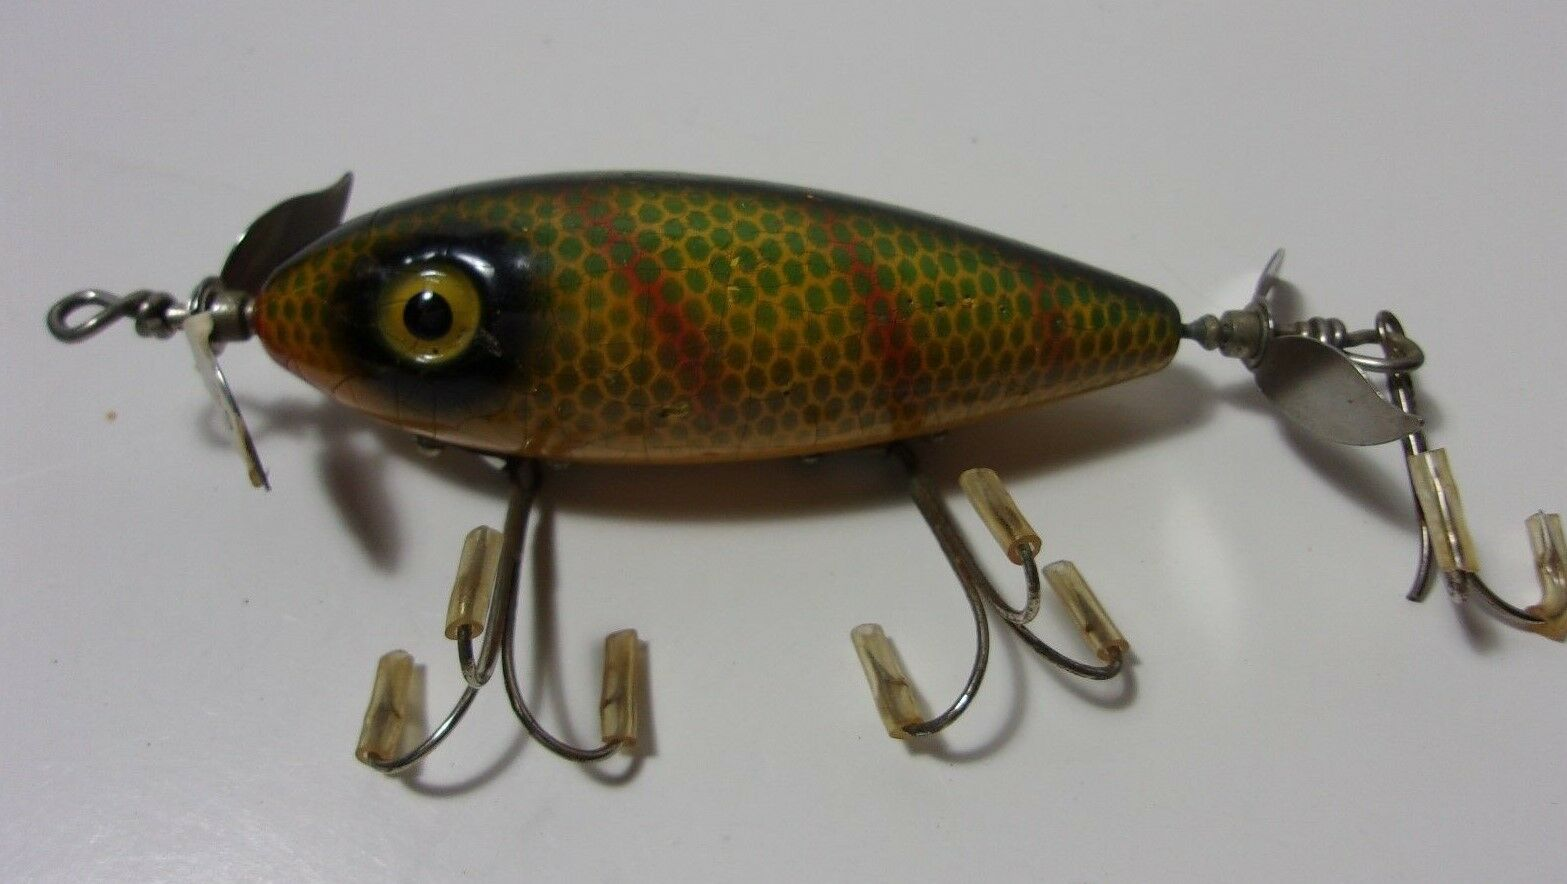 SOUTH BEND SURF ORENO Fishing Vintage wood Perch Lure     T  wholesale prices